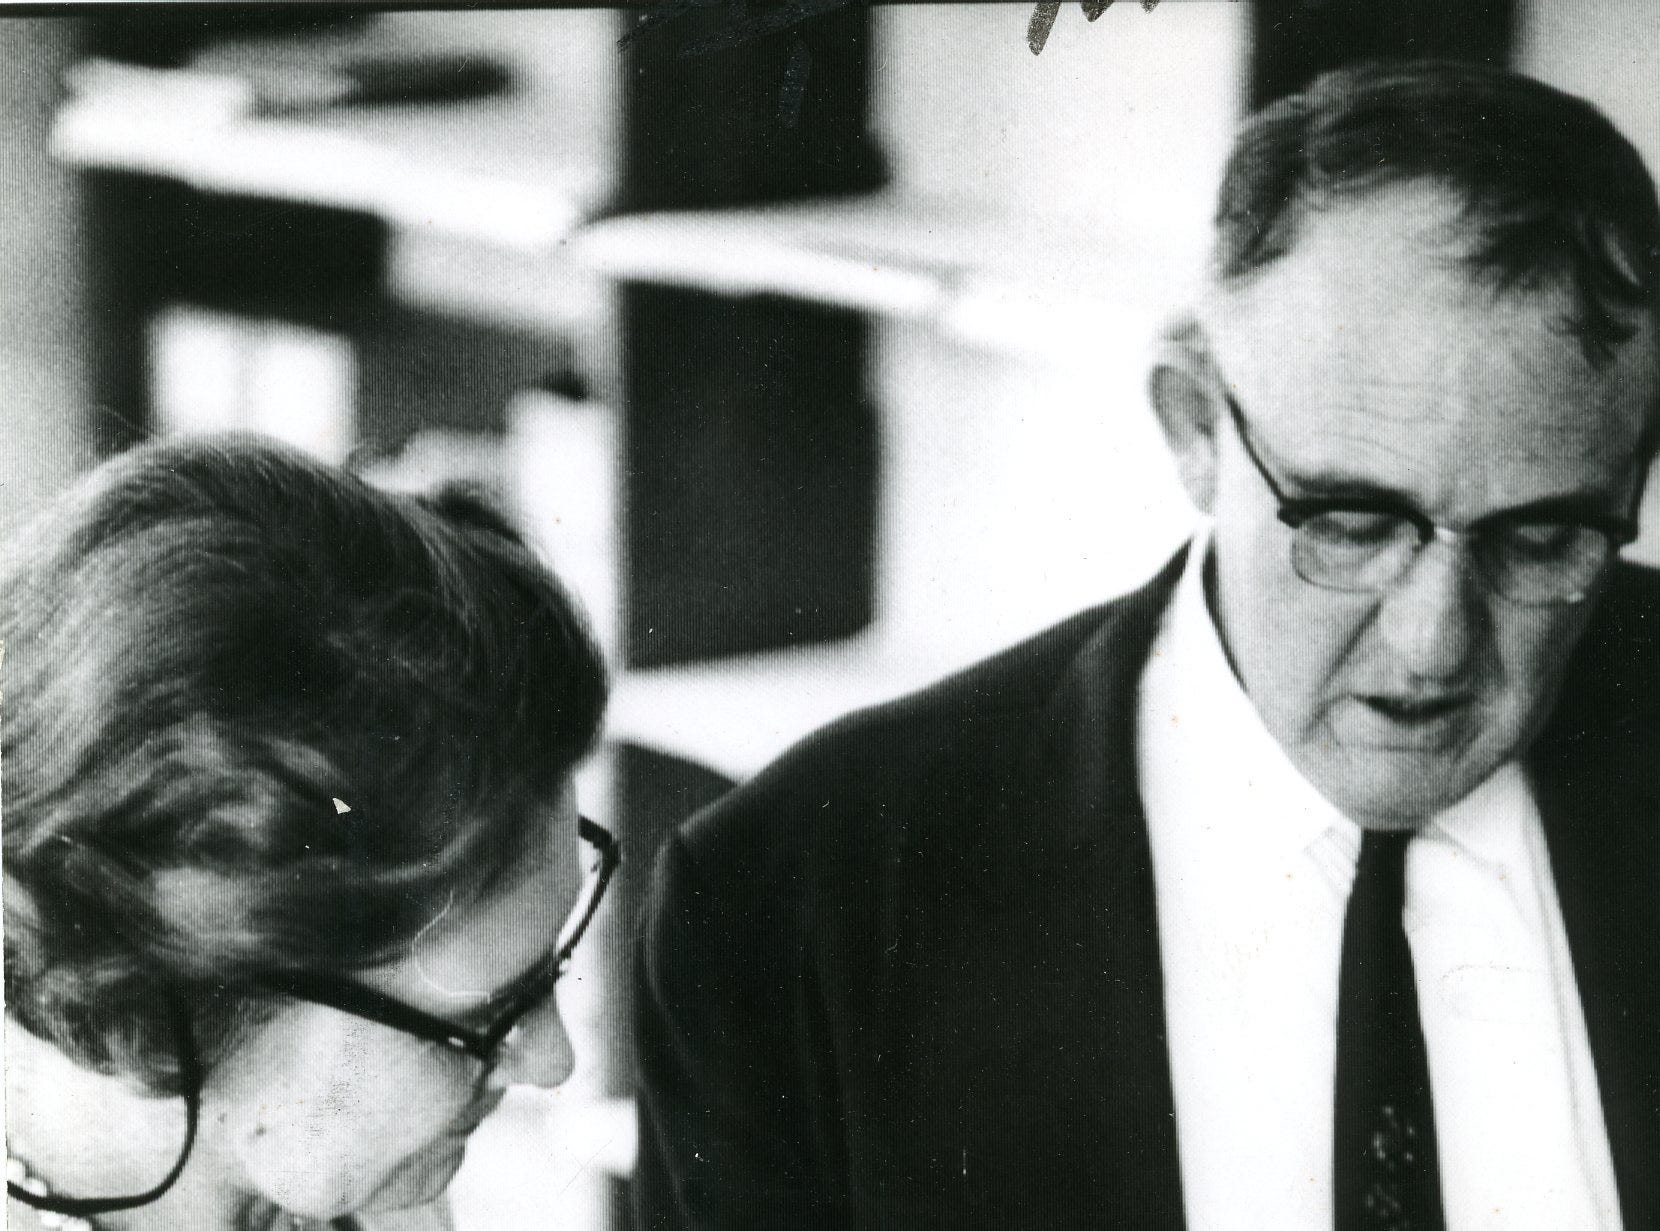 District attorney A. F. Sloan, right, on the Highlander School case. August, 1959.